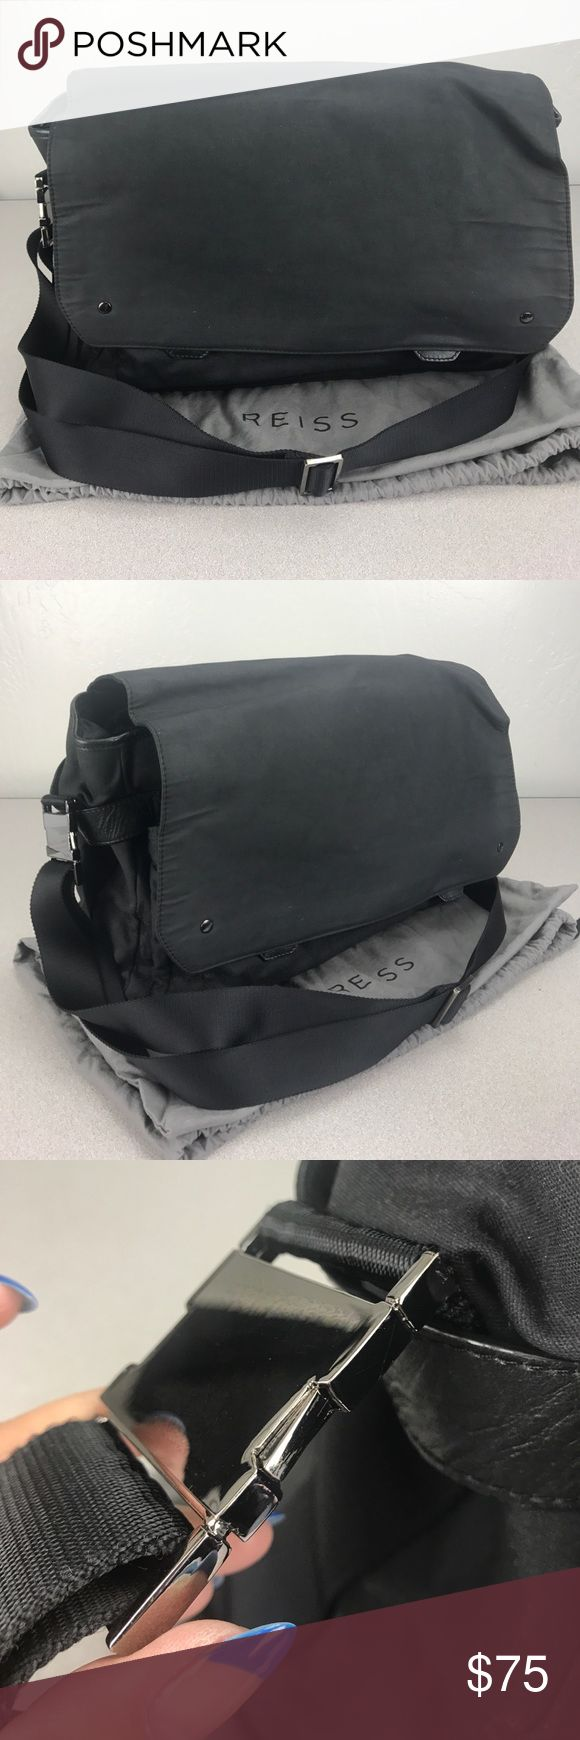 Reiss Black Waxed Canvas Messenger Bag Purchased at the Reiss SF store back in 2011. Very well kept. Pass through on back to put securely on your luggage. Beautiful leather details. Separate laptop compartment which is removable. Reiss Bags Laptop Bags